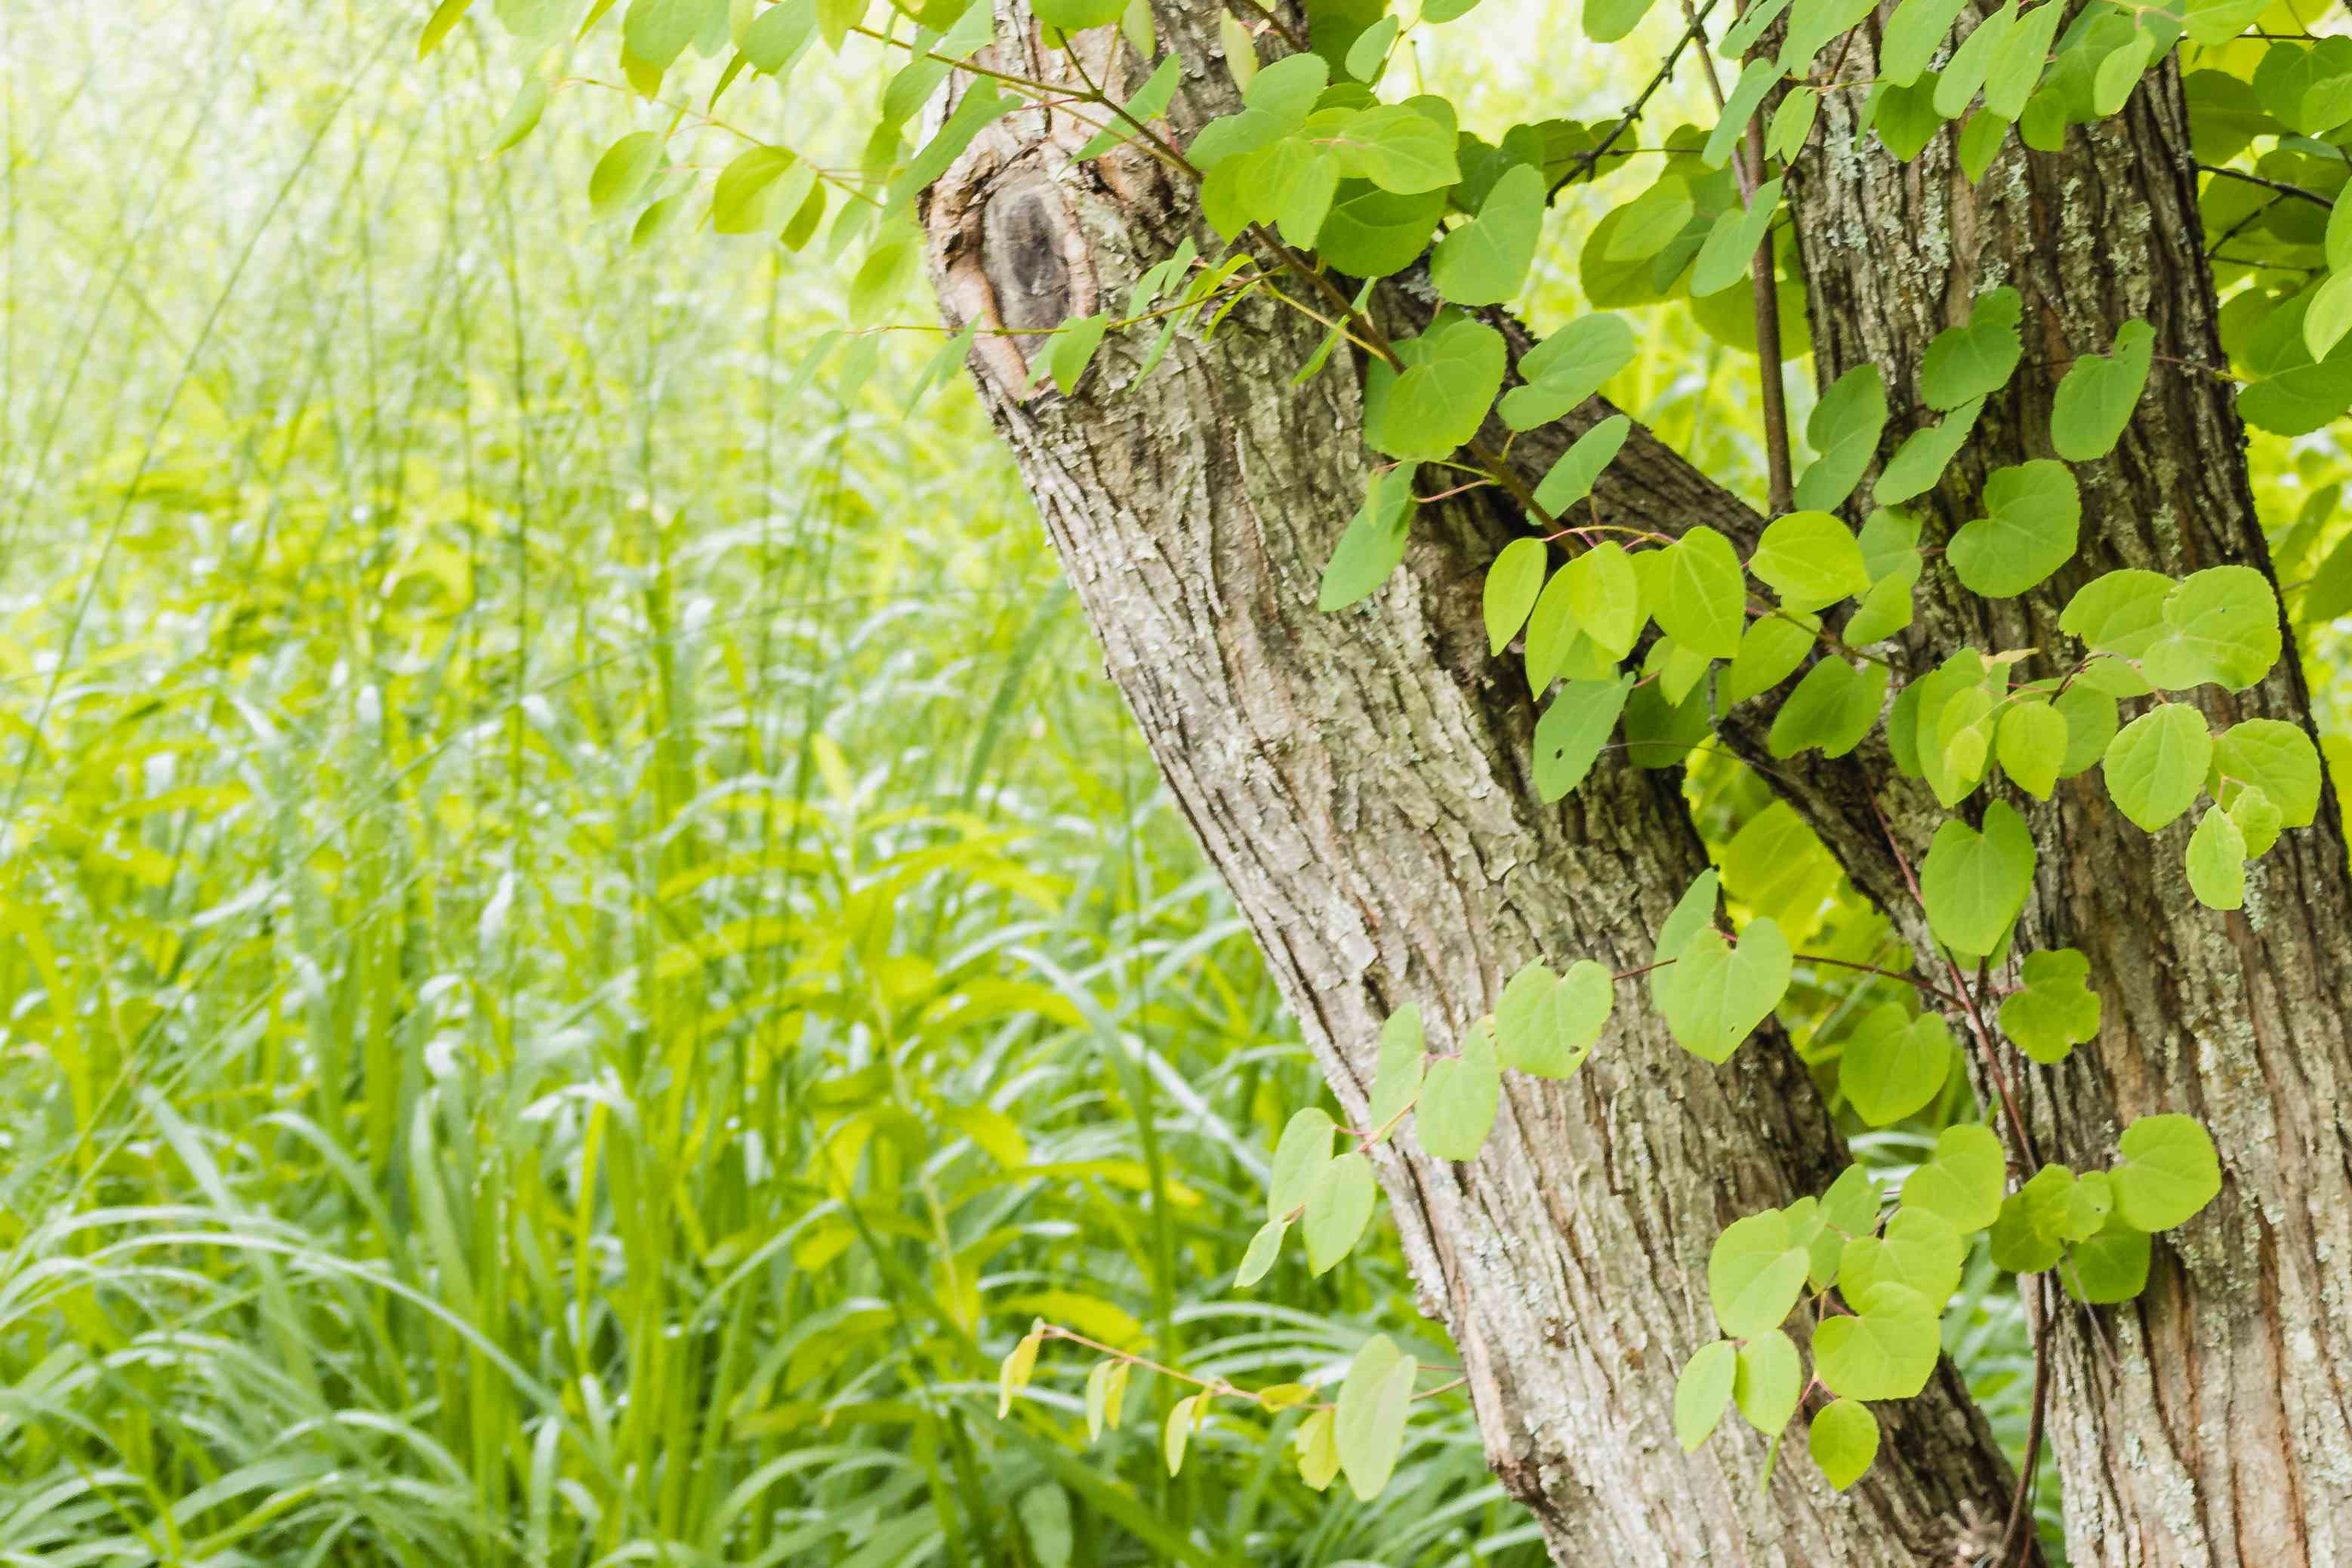 Katsura tree closeup of trunk and multi-stems with green leaves